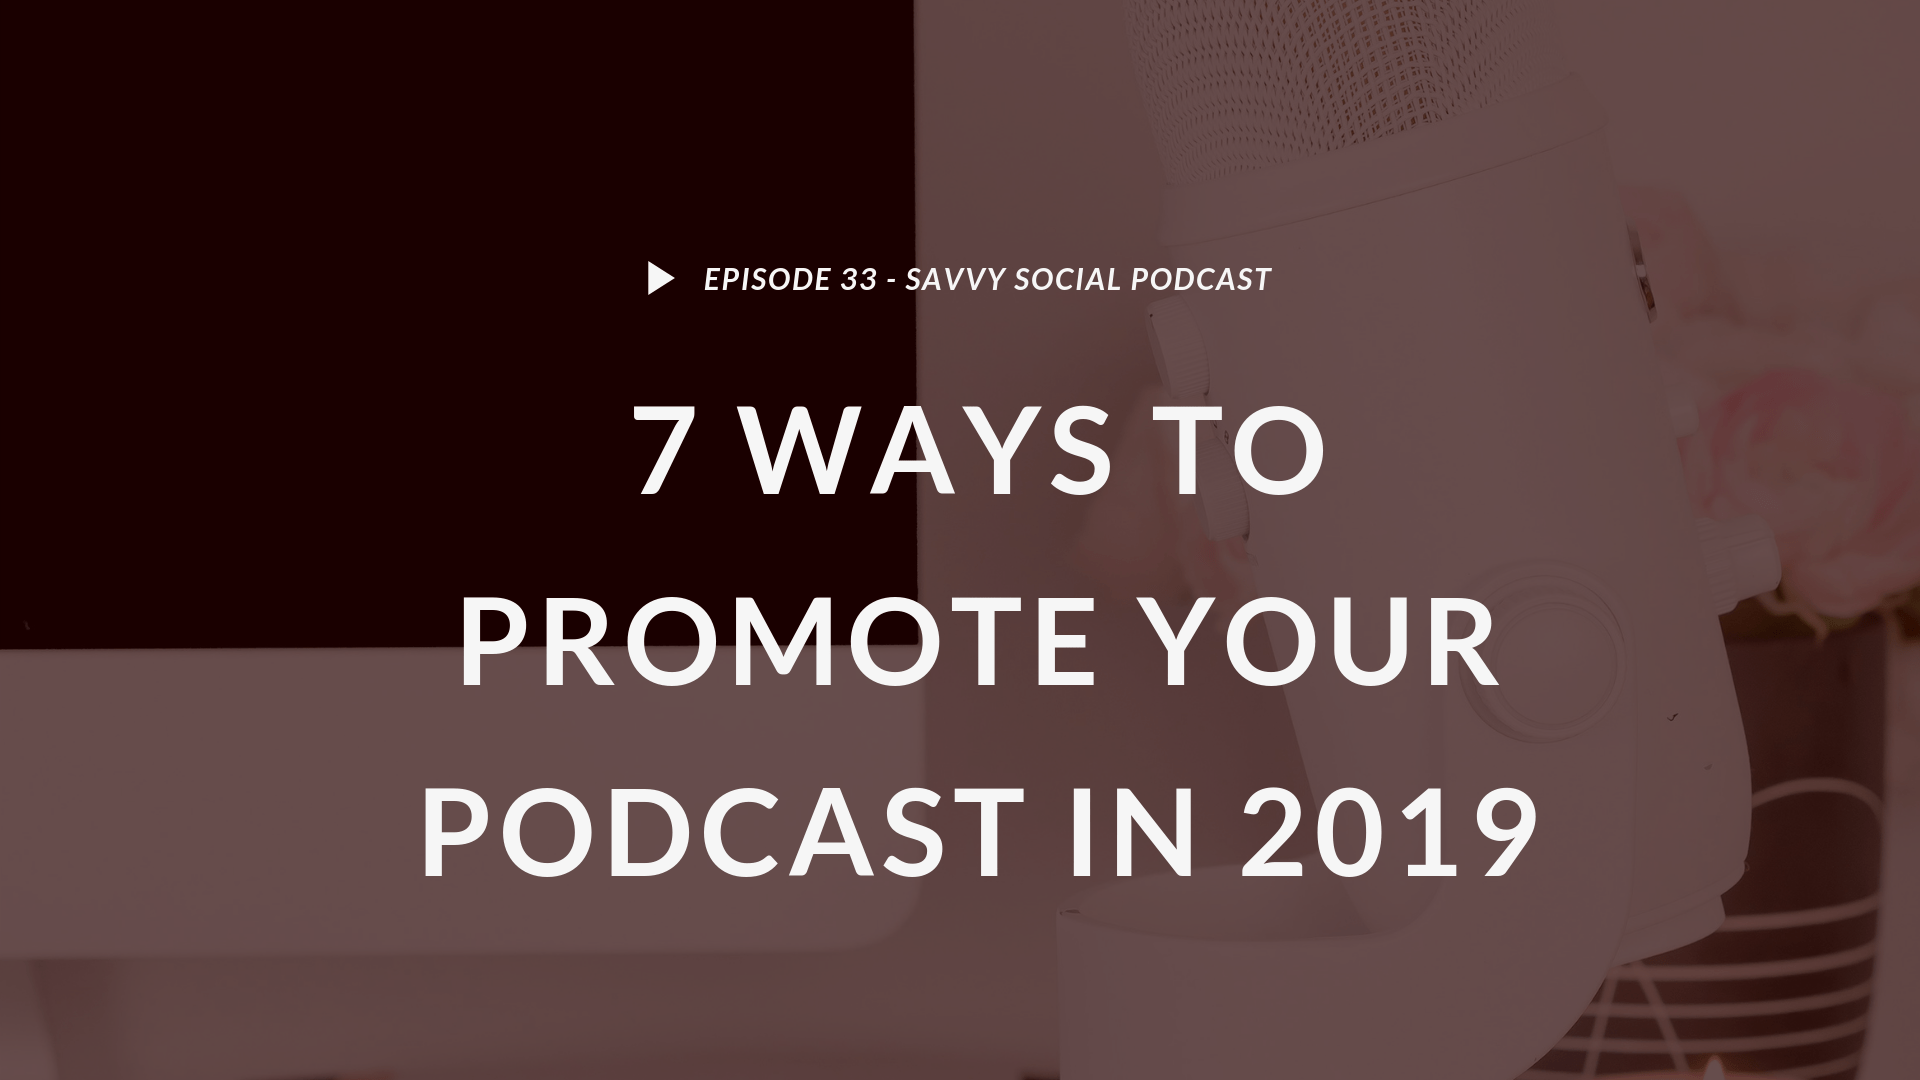 7 Ways to Promote Your Podcast in 2019